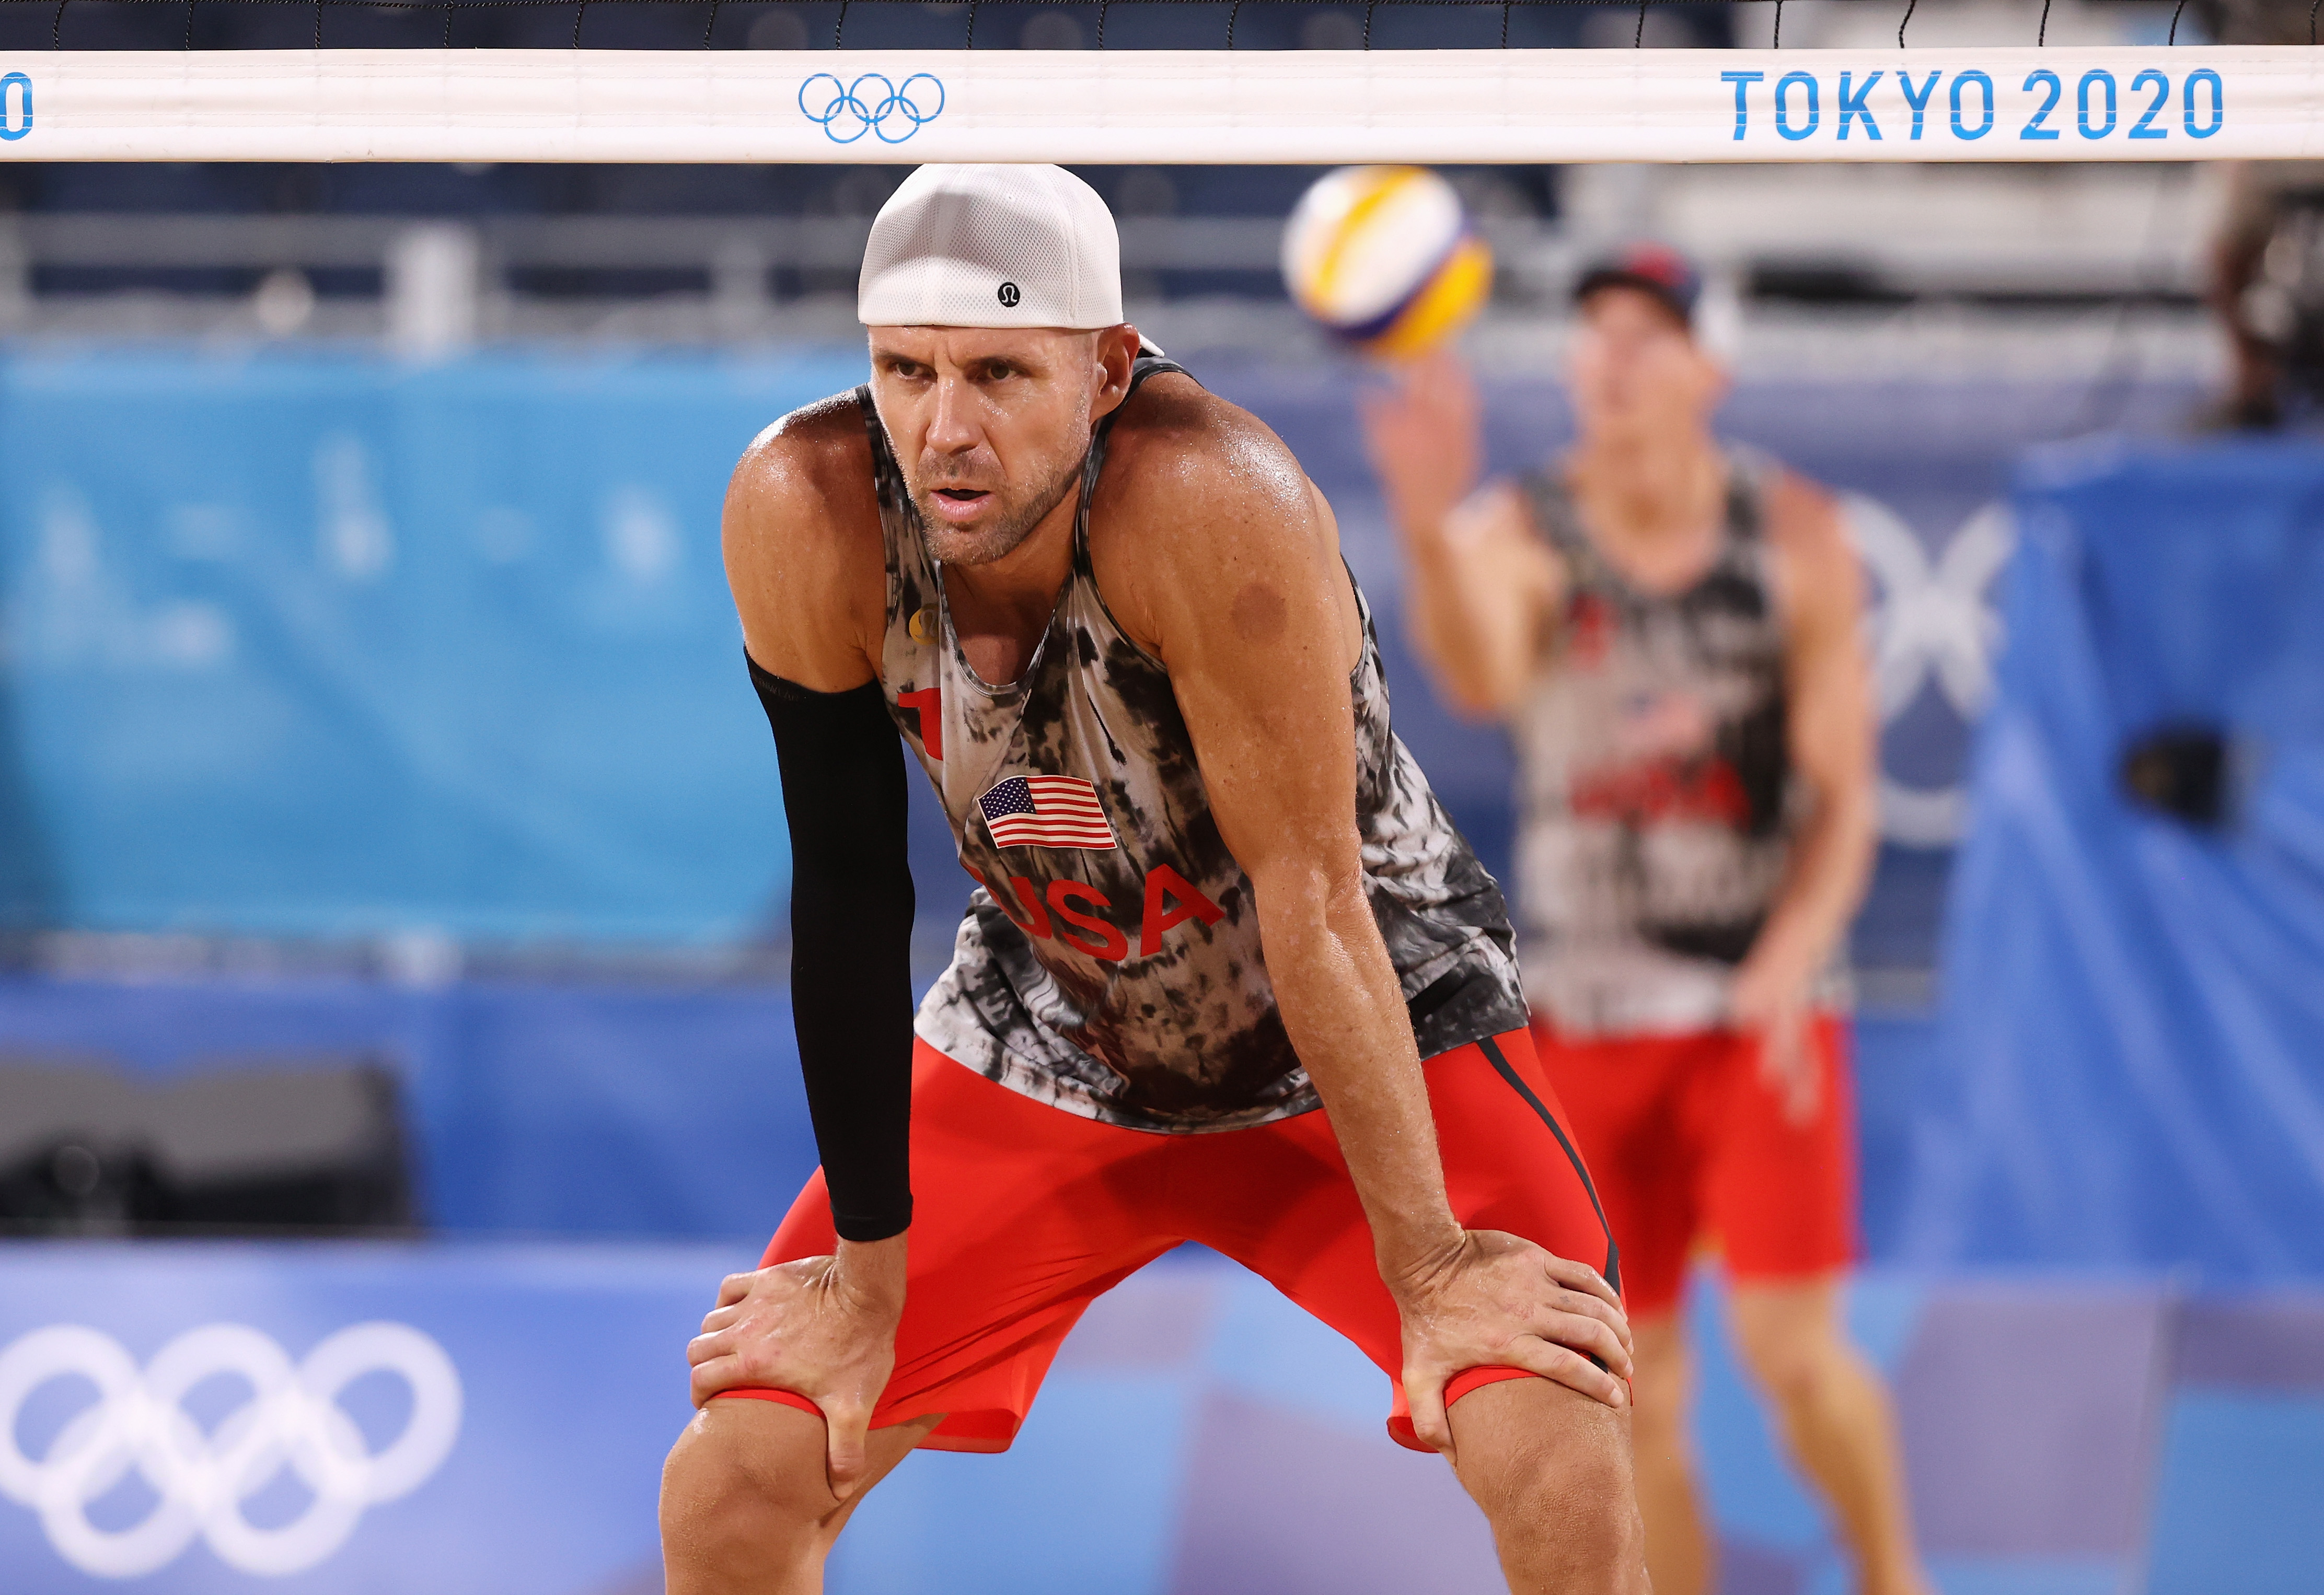 Jacob Gibb and Tri Bourne of Team United States compete against Team Italy during the Men's Preliminary - Pool C on day two of the Tokyo 2020 Olympic Games at Shiokaze Park on July 25, 2021 in Tokyo, Japan.